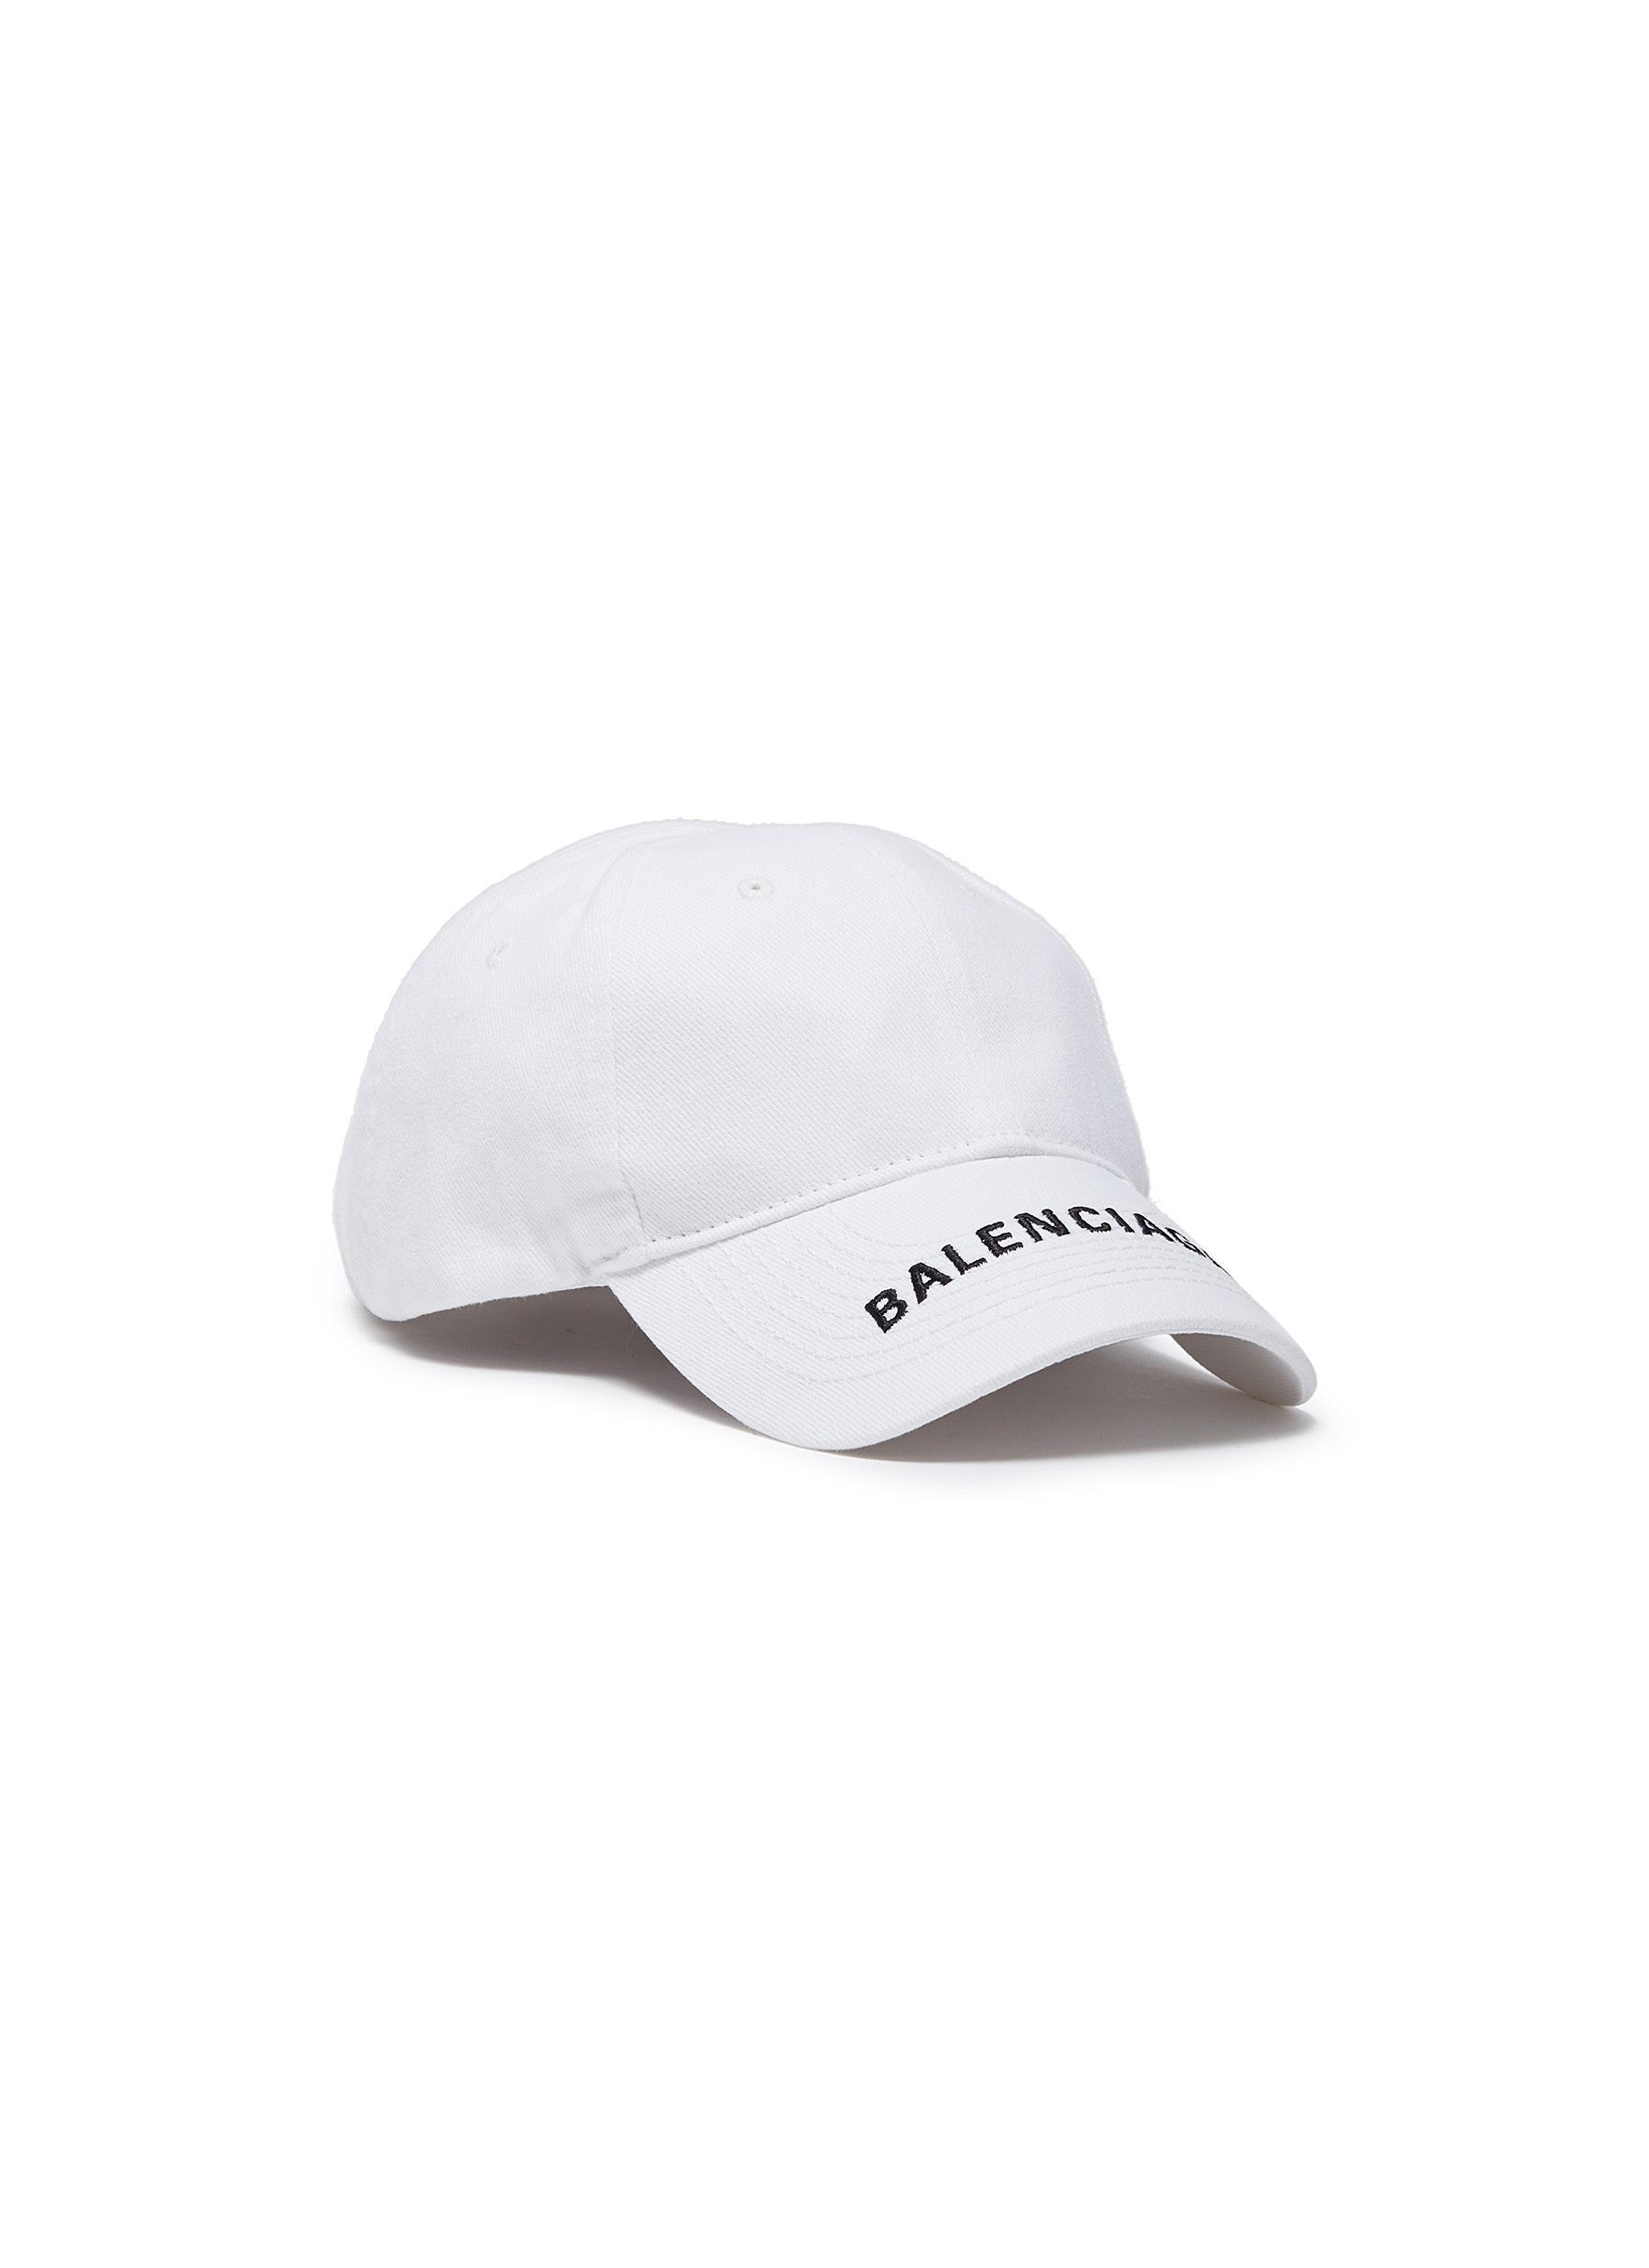 45843ca34e4 Lyst - Balenciaga Logo Embroidered Cotton Cap in White for Men ...